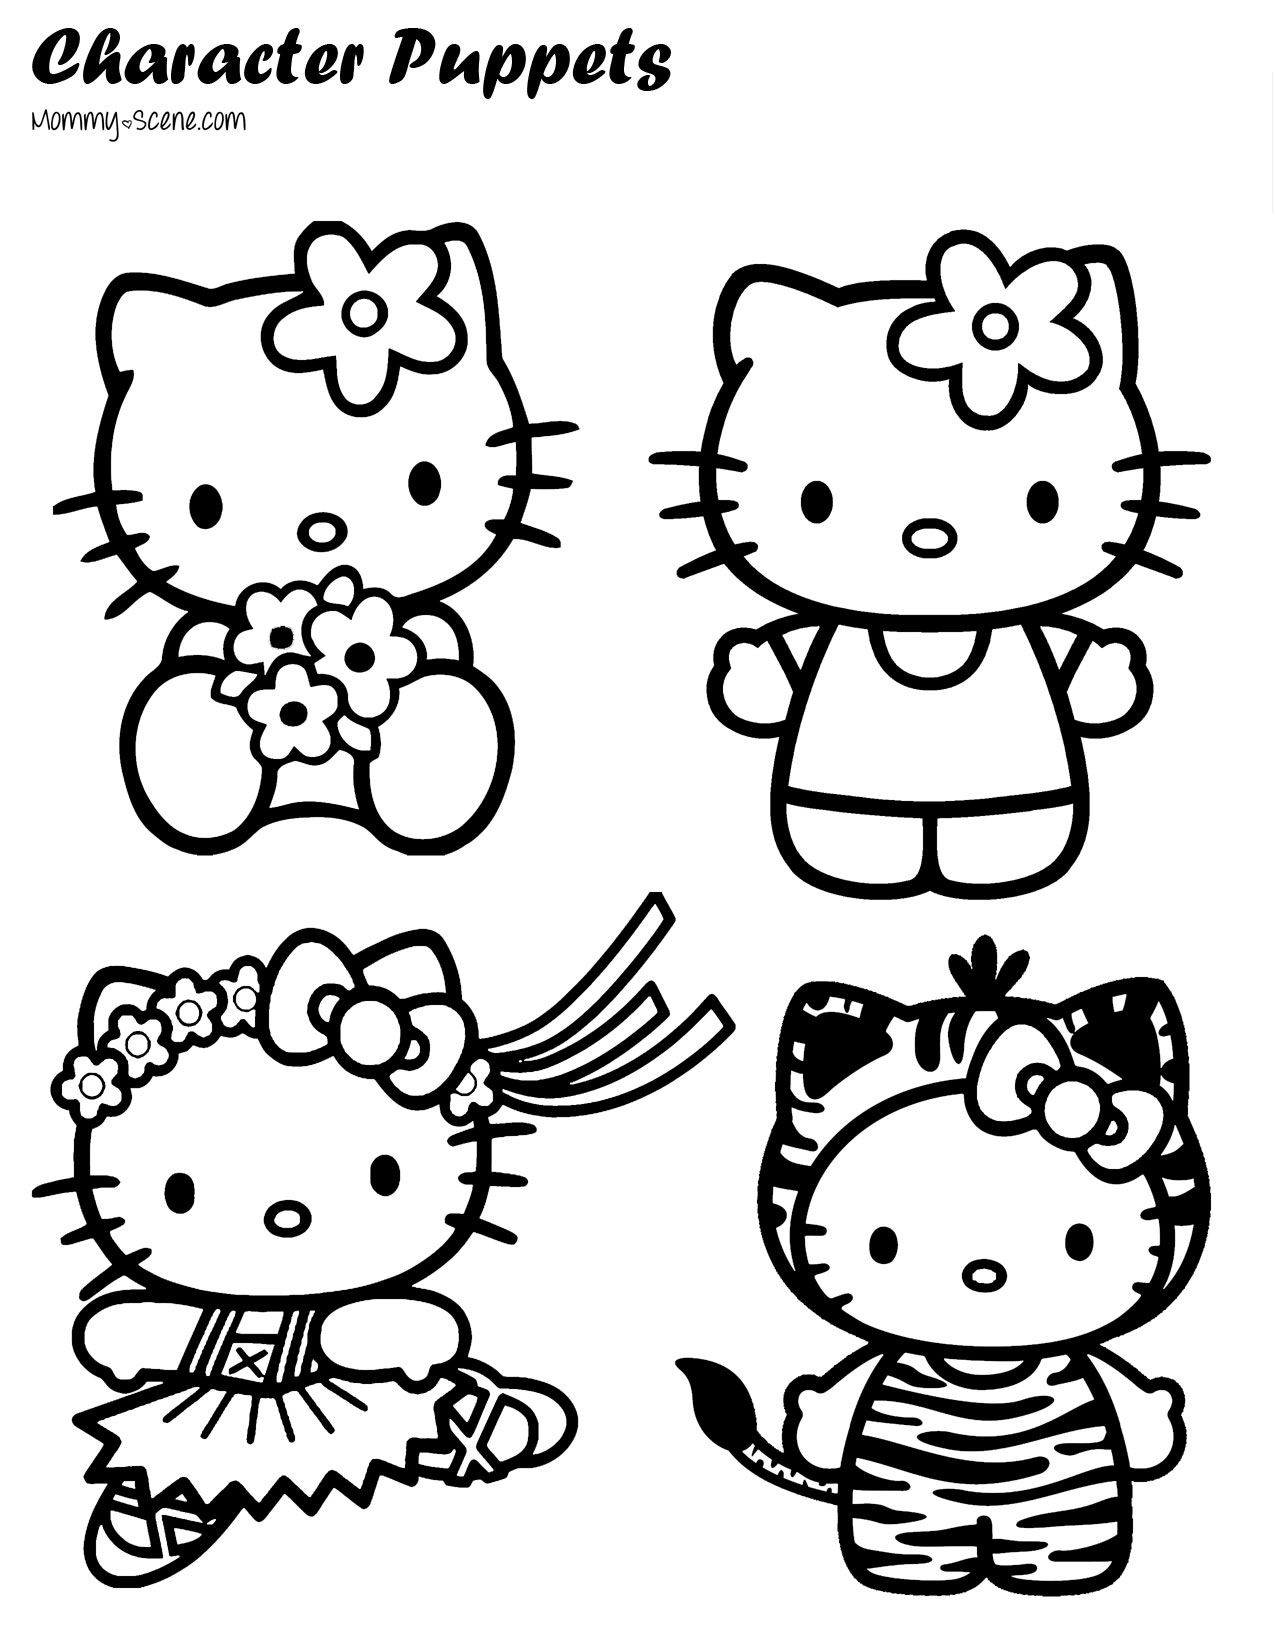 Paper Character Puppets Hello Kitty Colouring Pages Kitty